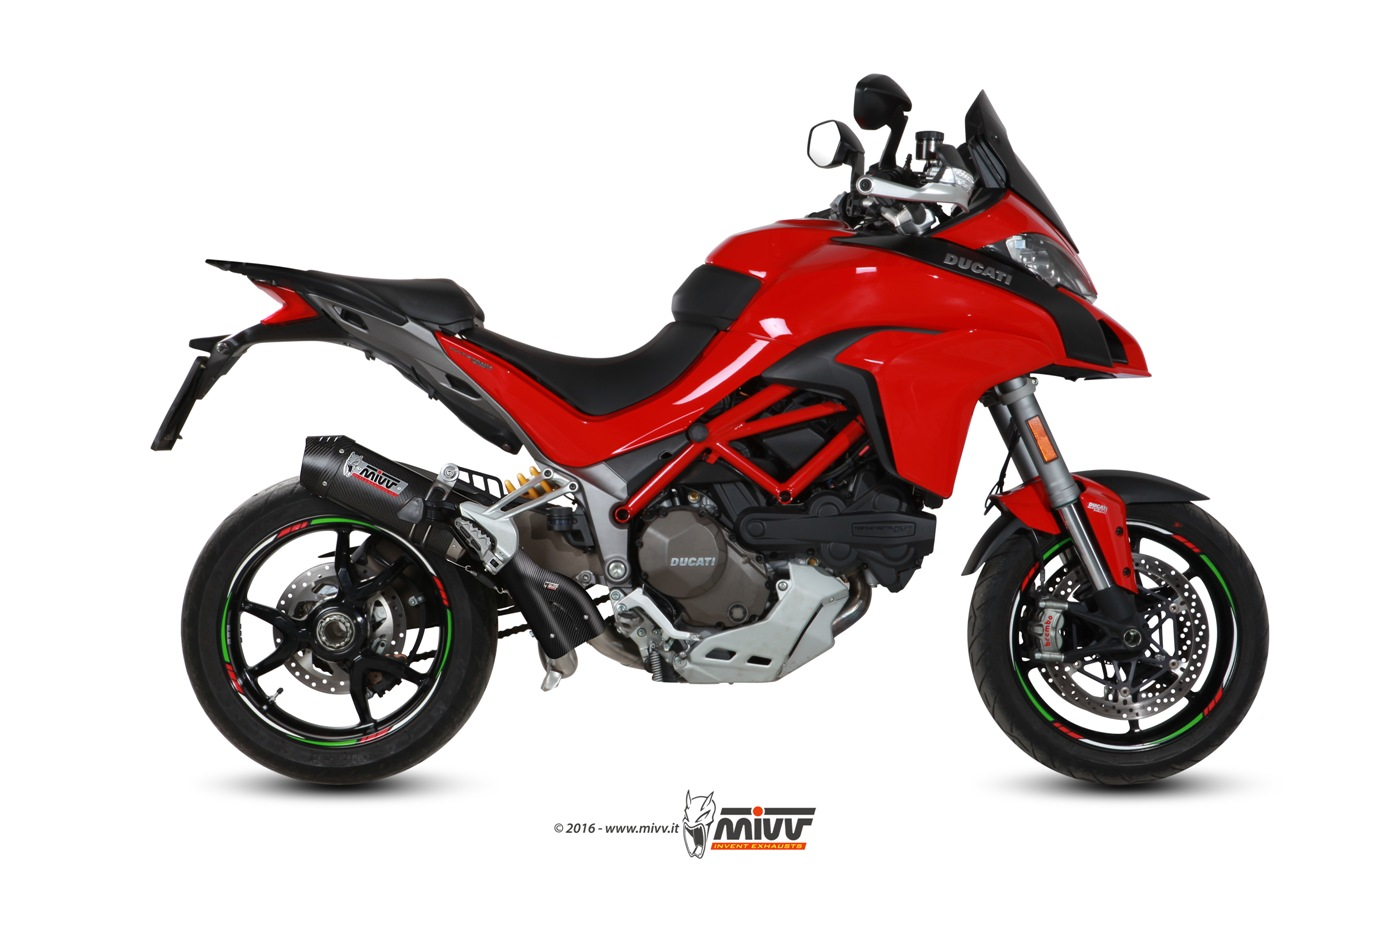 DUCATI MULTISTRADA 1200 Exhaust Mivv Oval Carbon with Carbon cap D.033.S3C